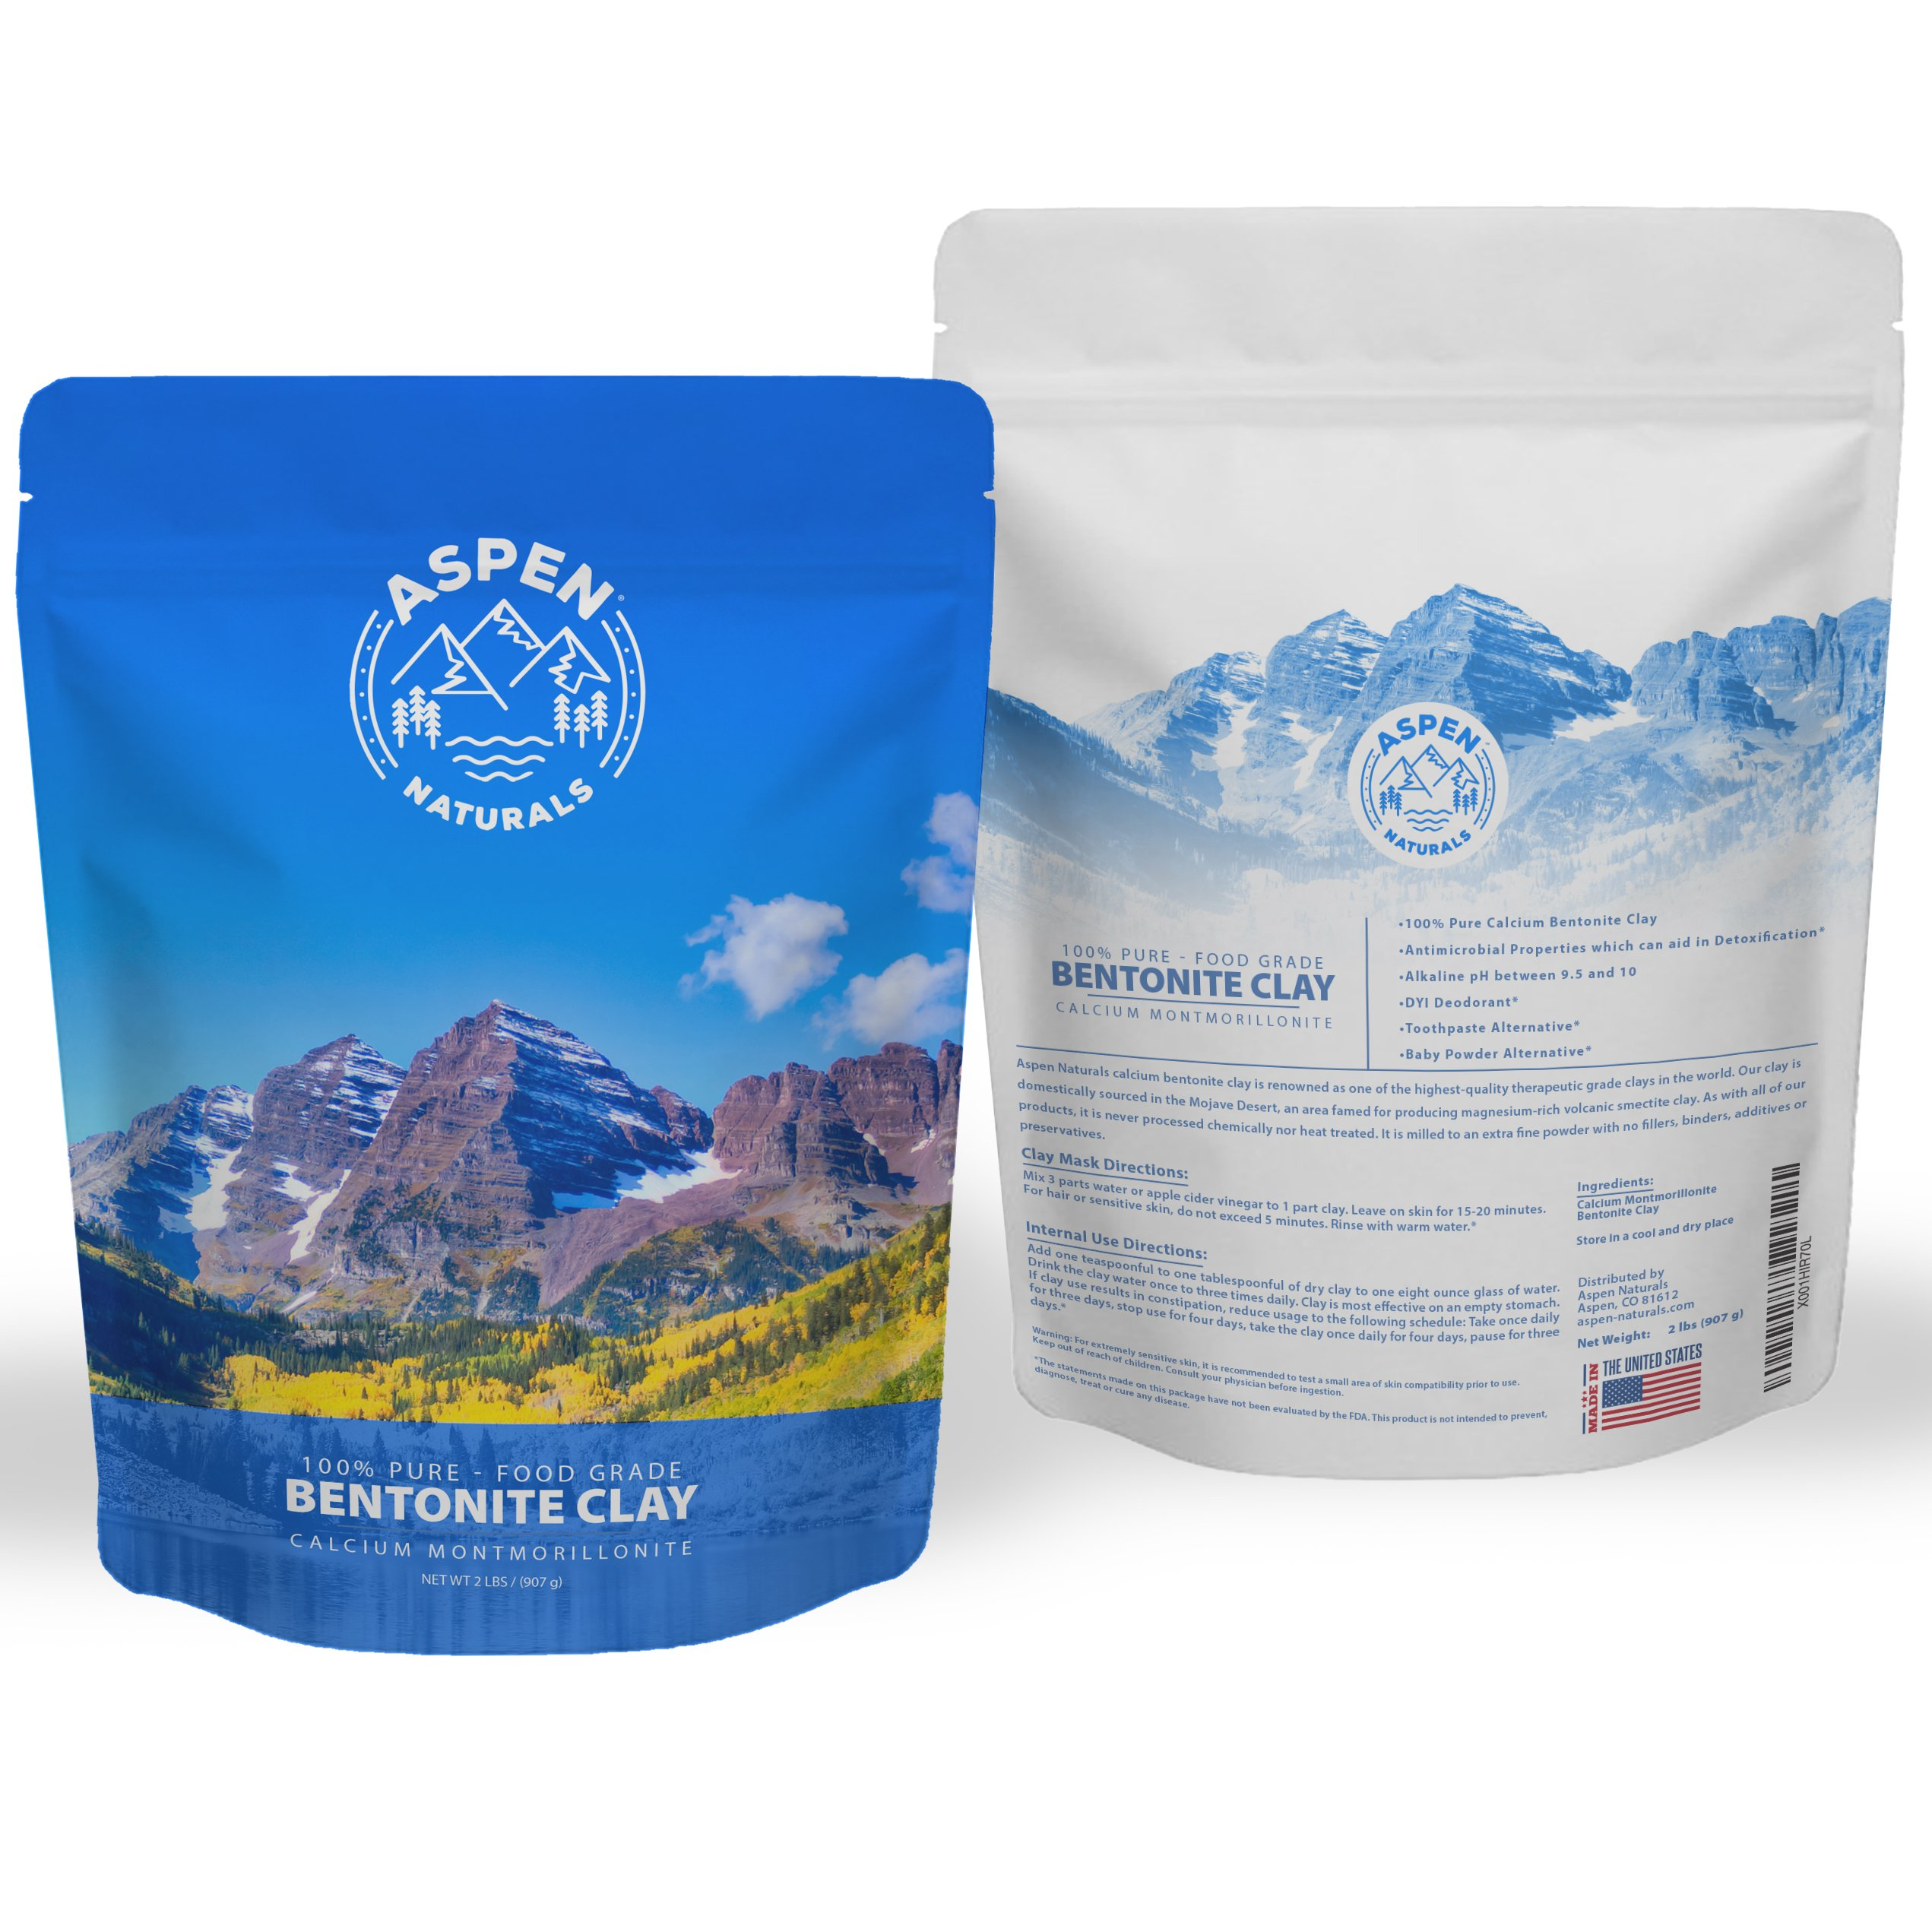 Food Grade Calcium Bentonite Clay - 2 LB Bentonite Montmorillonite Powder - Safe to Ingest for The Ultimate Internal Detox or Make a Clay Face Mask for The Best Natural Skin Healing Powder by Aspen Naturals® (Image #9)